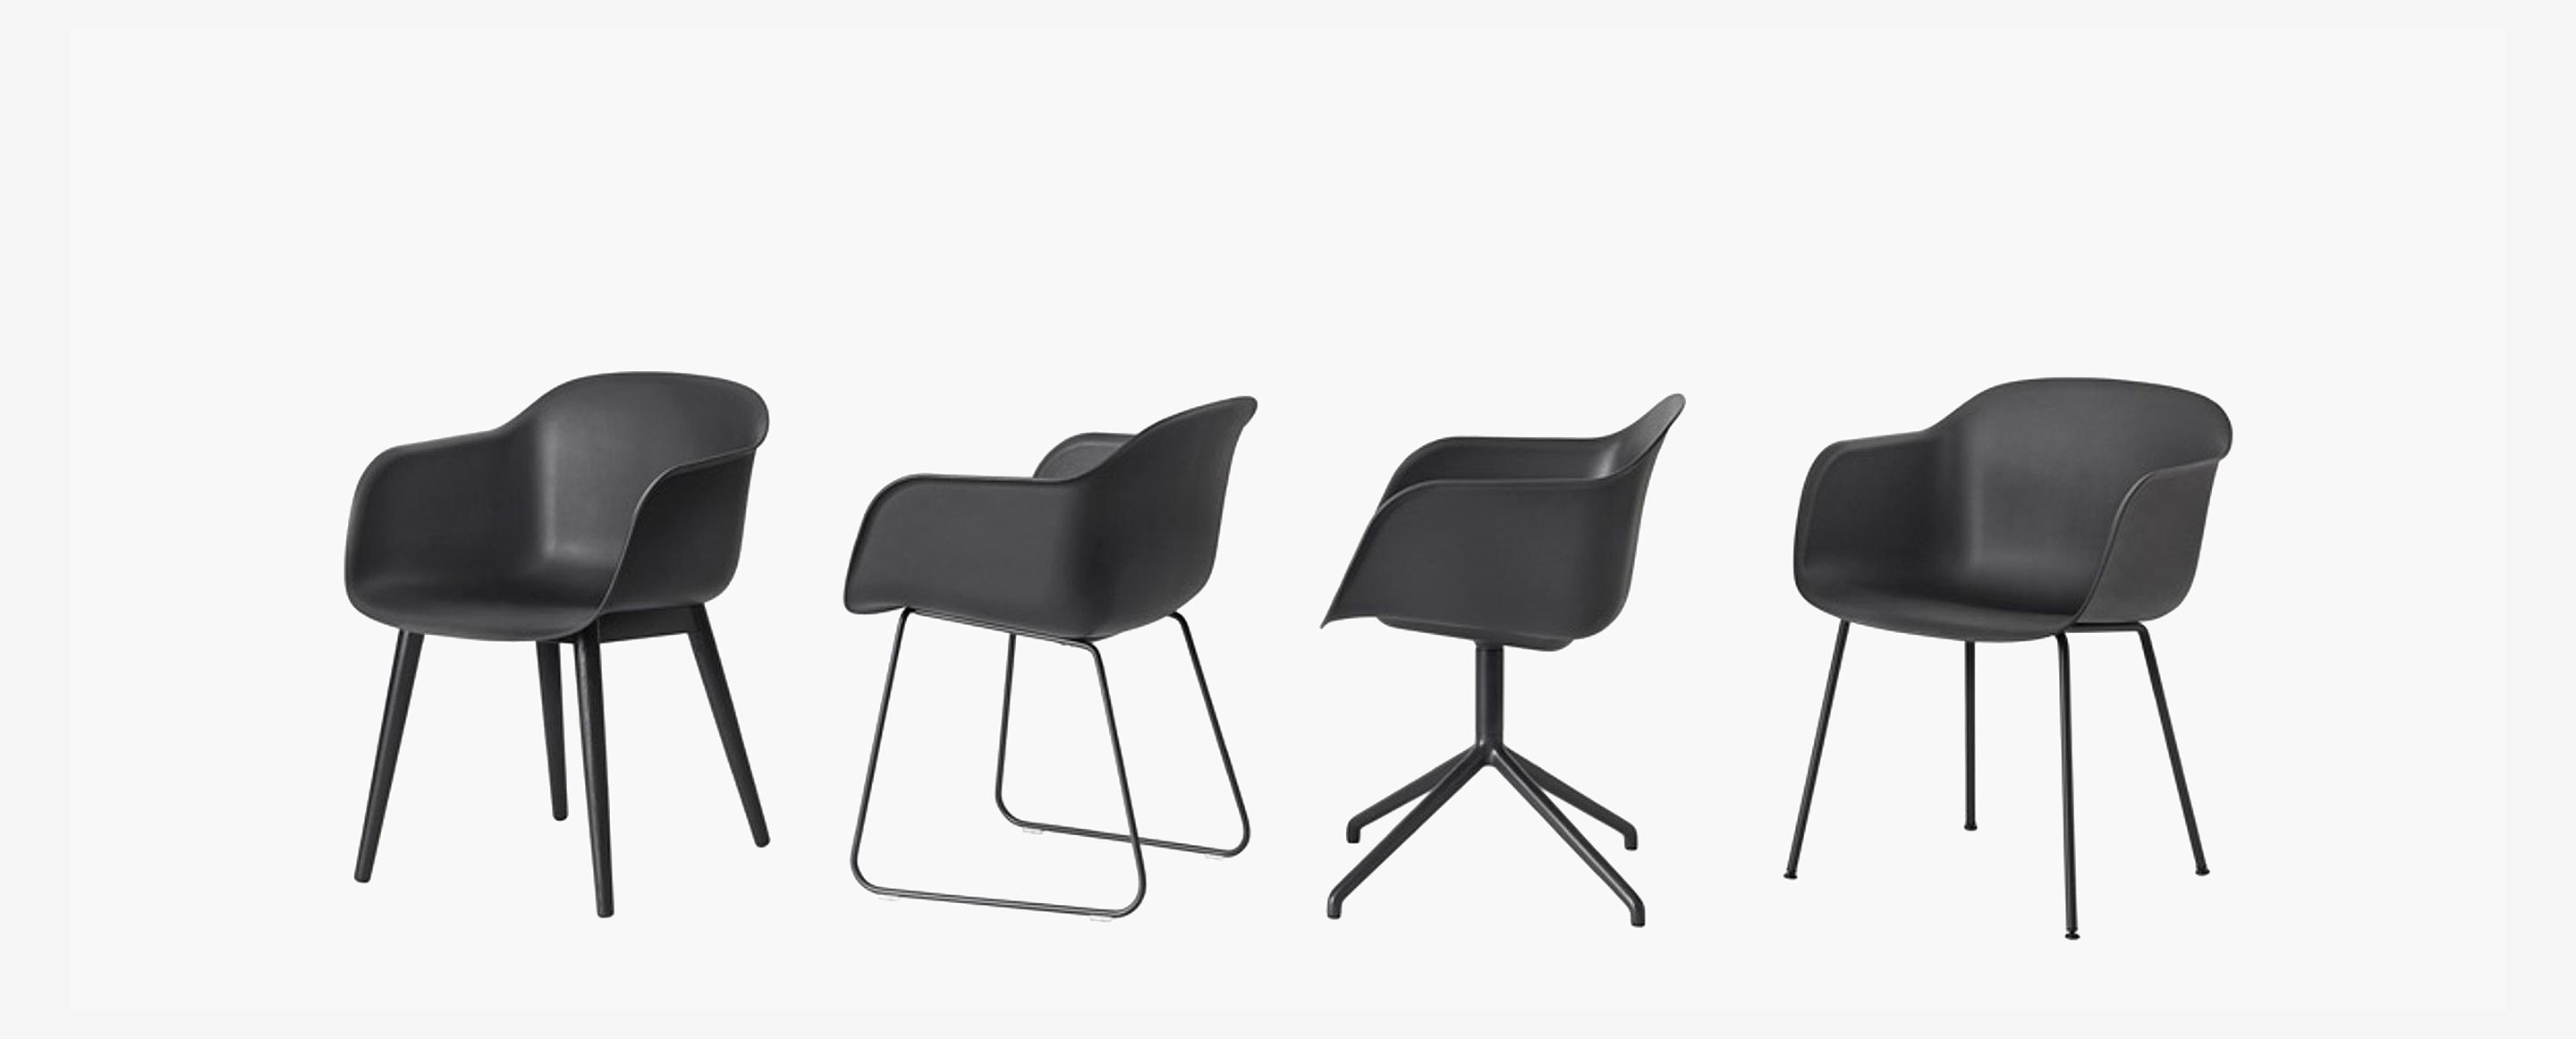 Fiber Chair Collection by Muuto